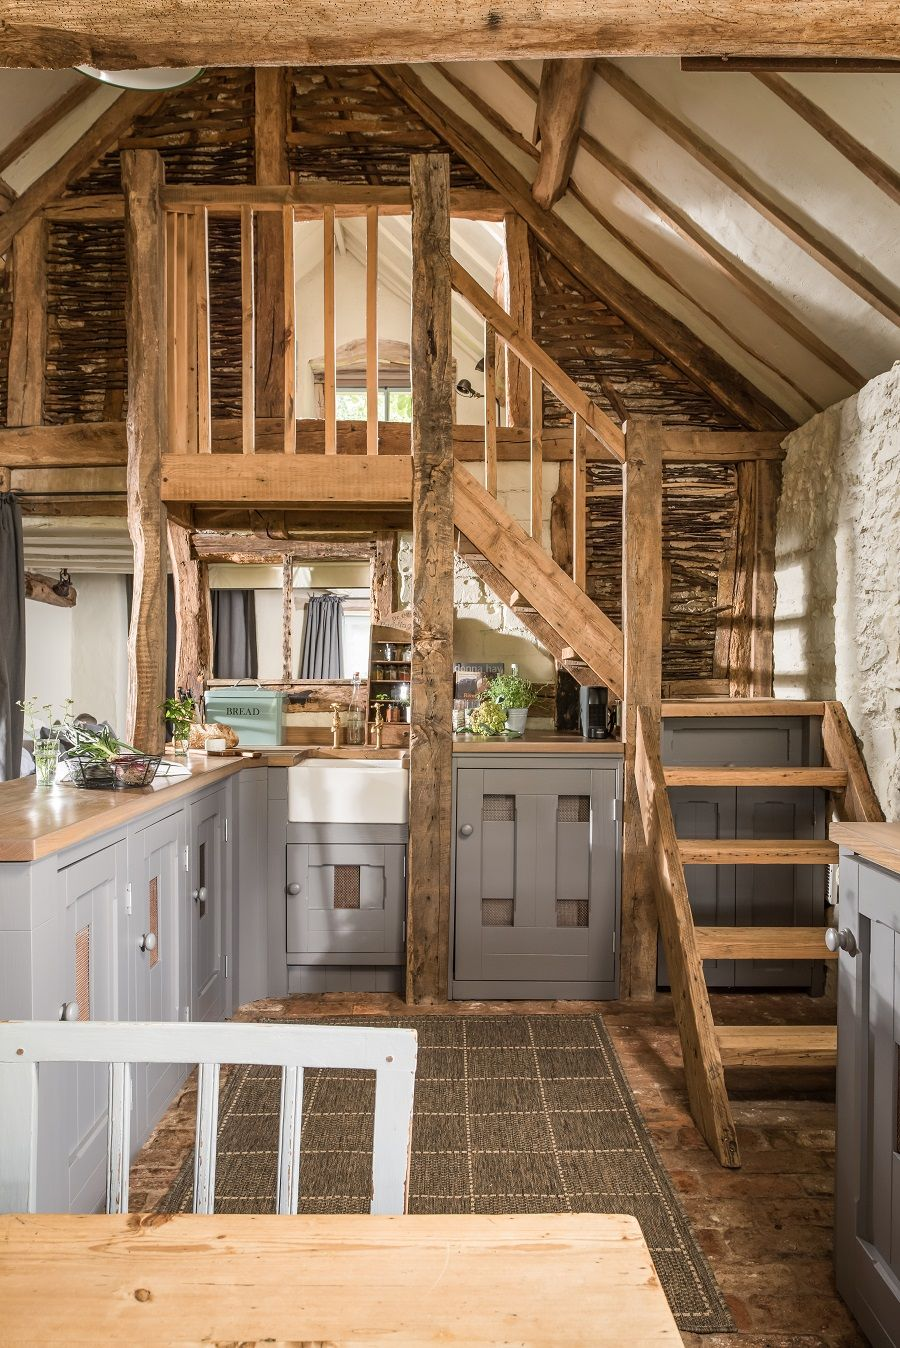 A Barn Style Holiday Cottage Oozing With Rustic Charm Small